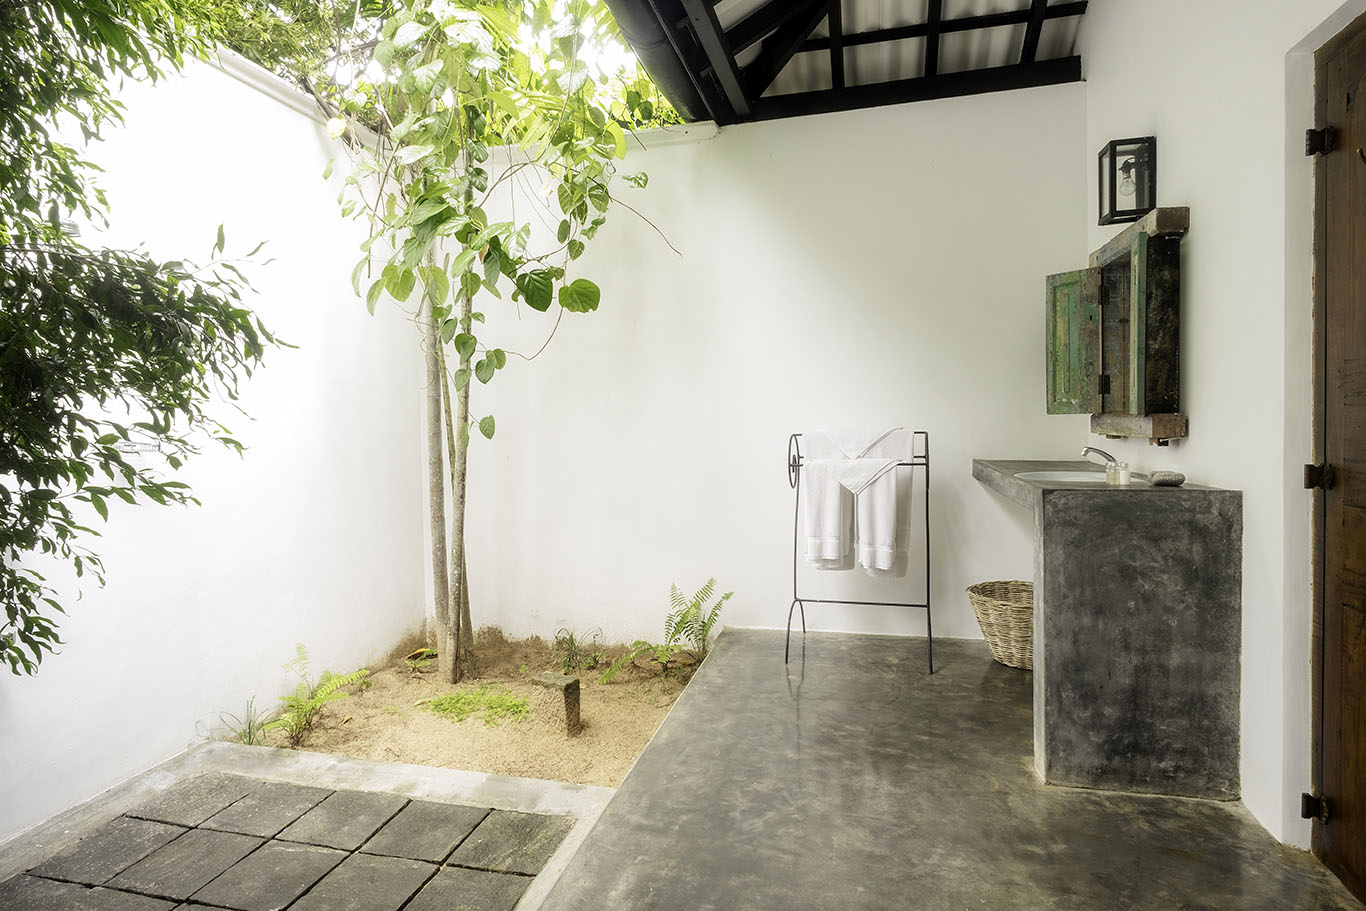 Outdoor Tropical Garden Bathroom at Nisala Arana